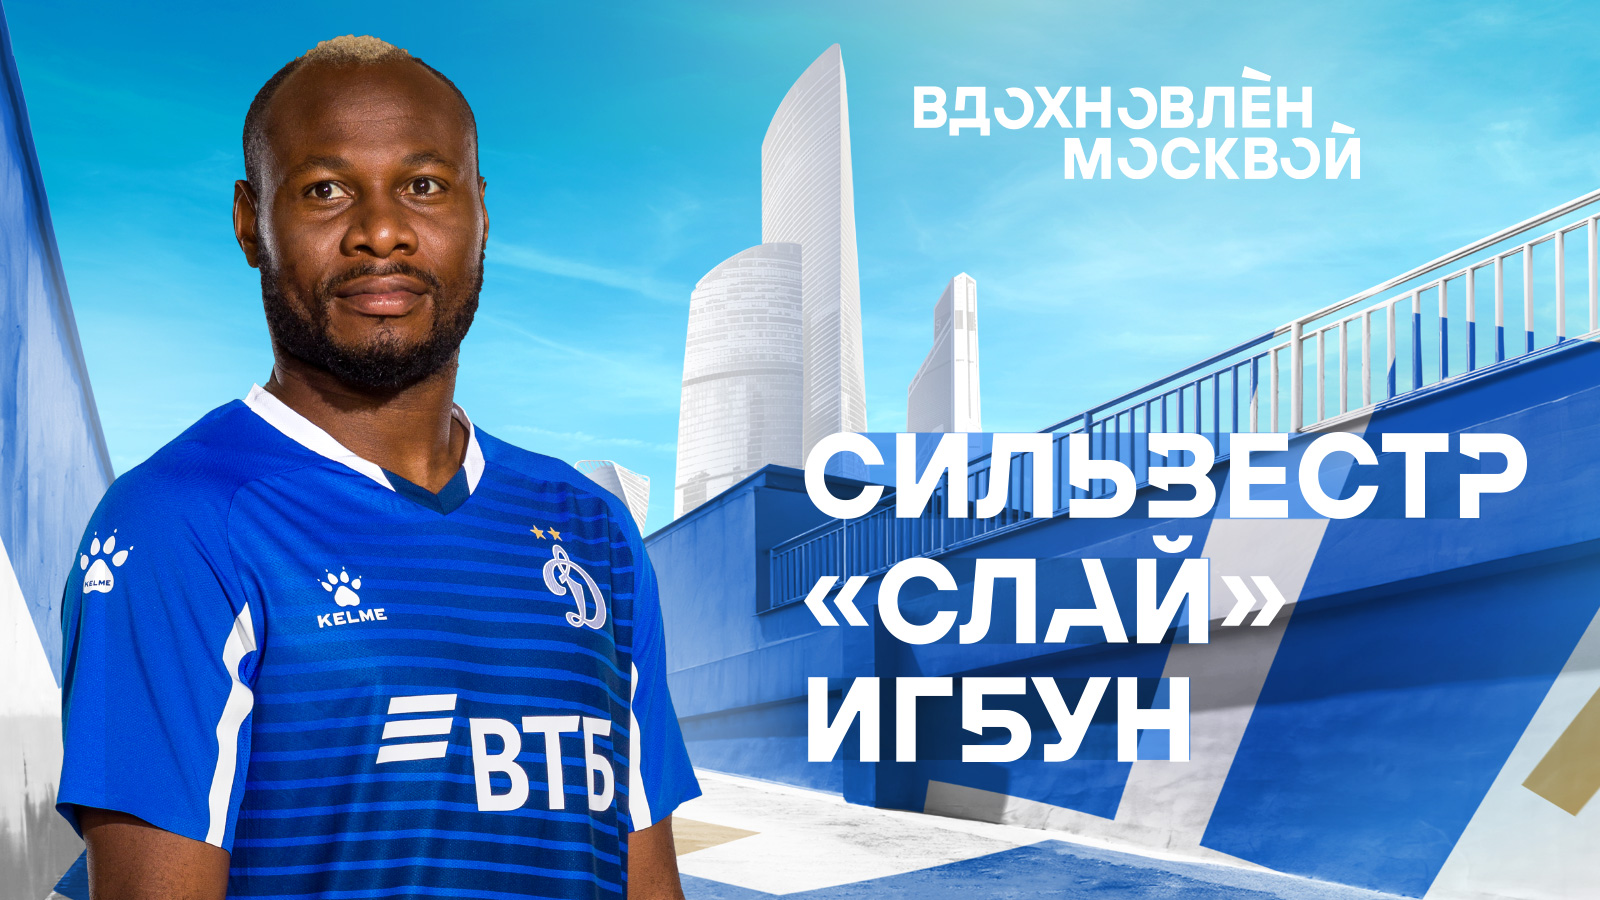 Igboun Thrilled To Join Russian Club Dynamo Moscow On Permanent Transfer